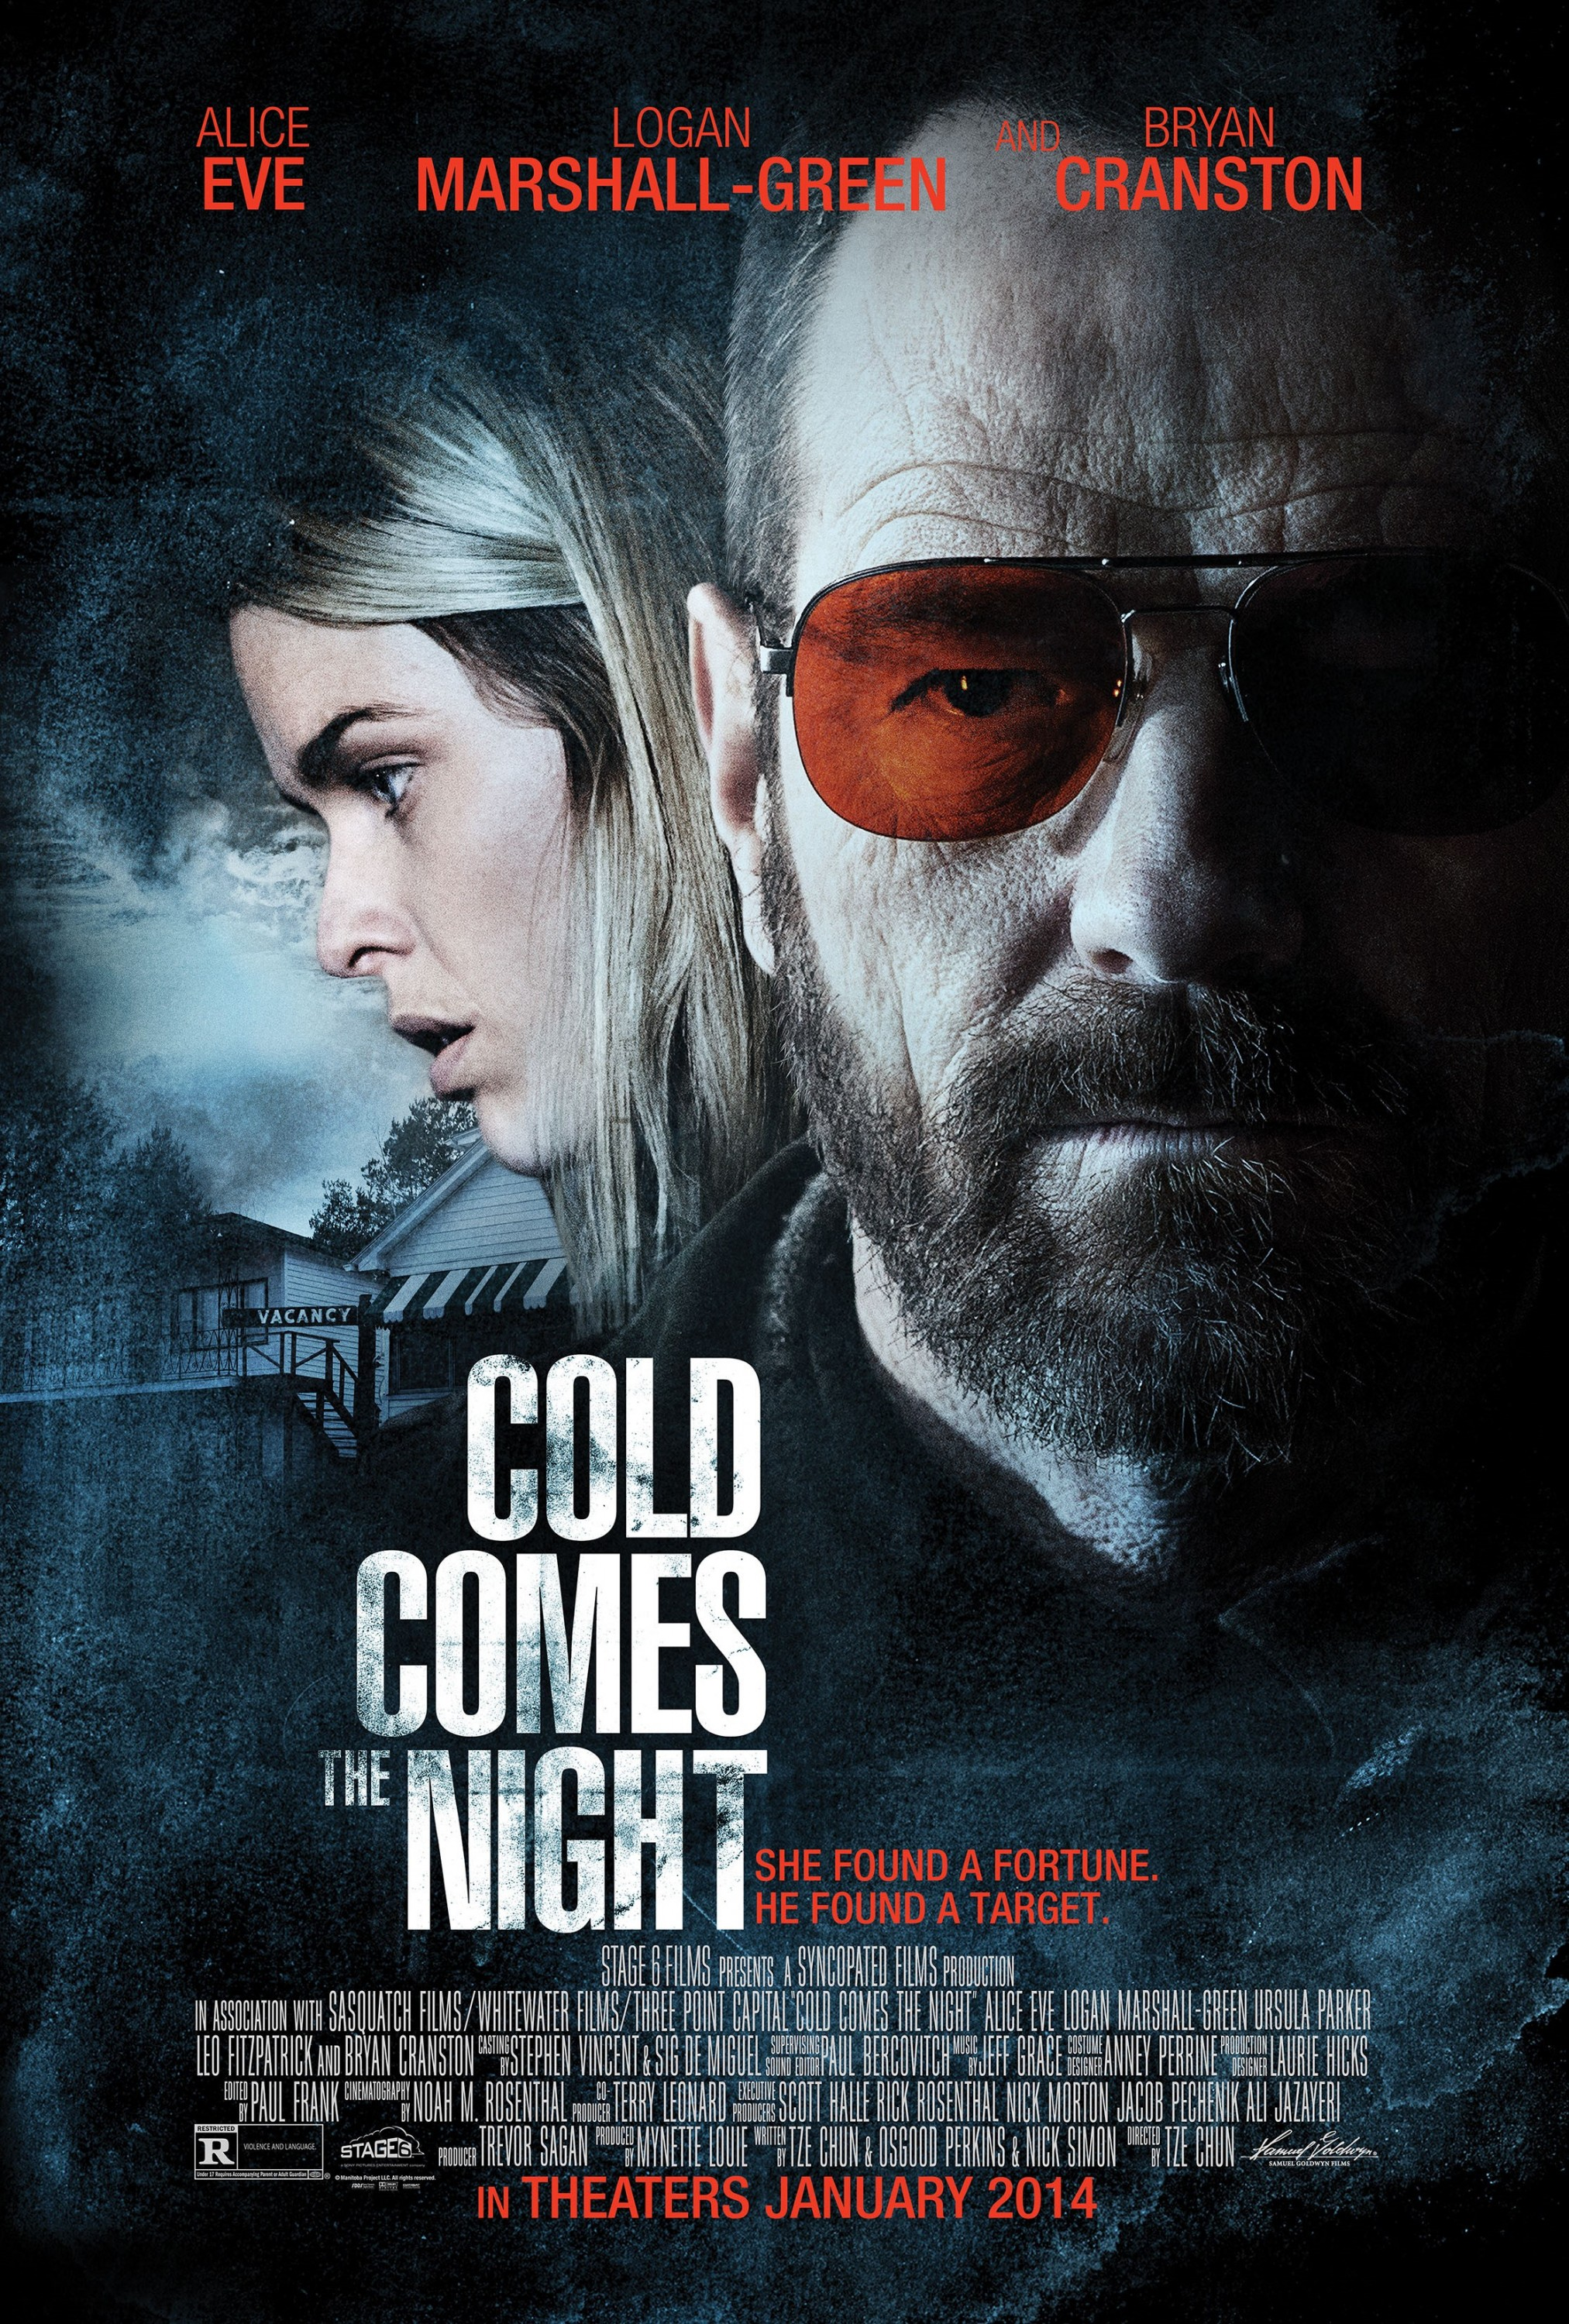 Cold Comes the Night-Official Poster Banner PROMO POSTER-28NOVEMBRO2013